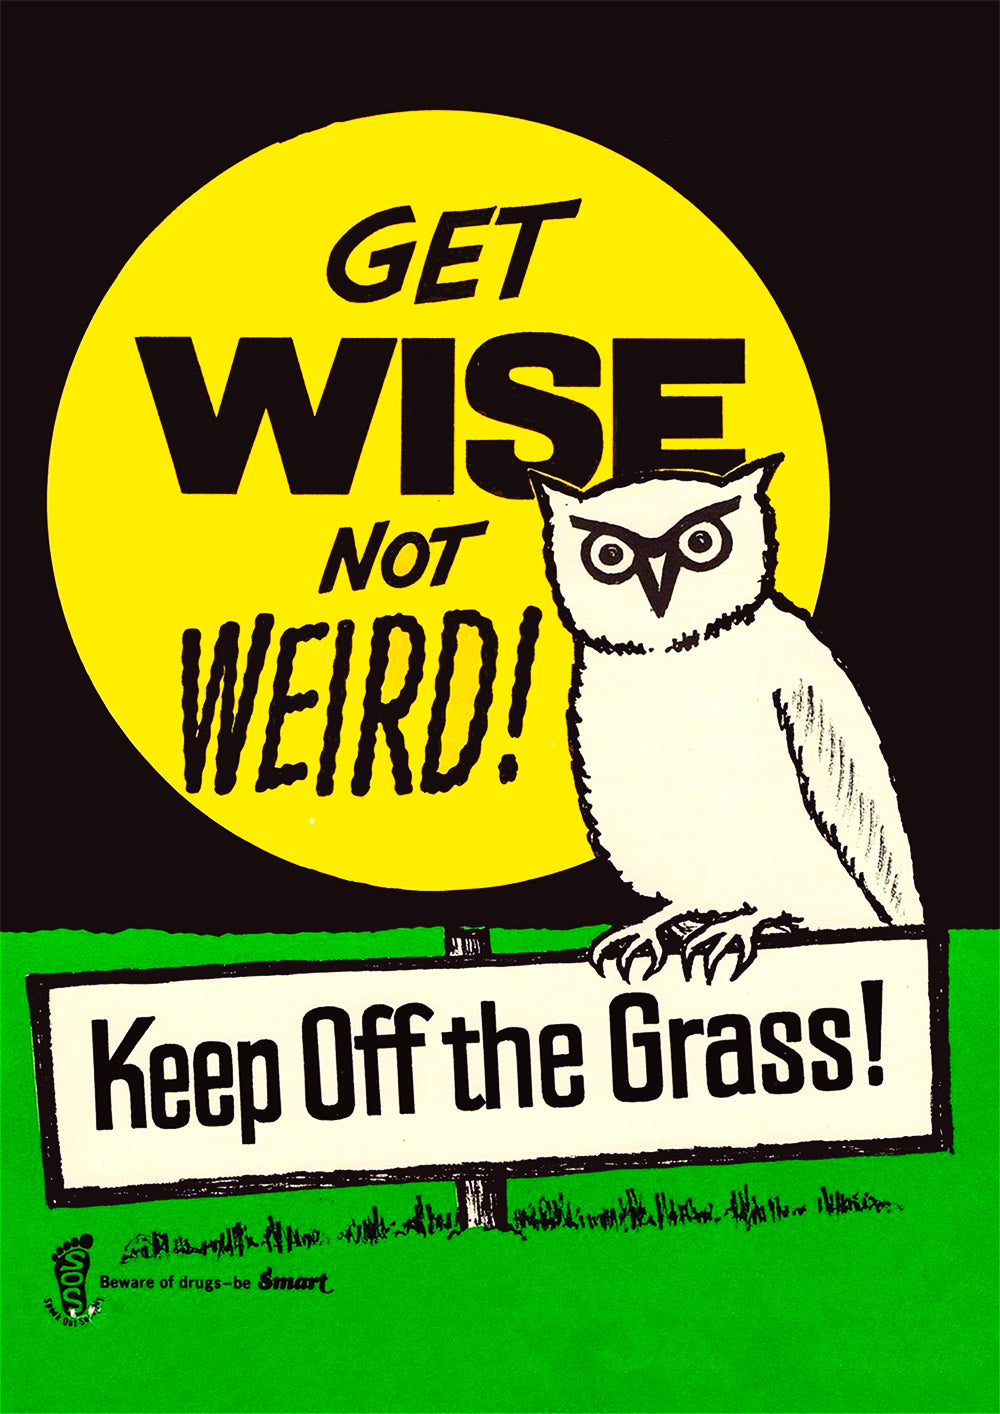 Get wise, not weird! – American anti-drugs poster